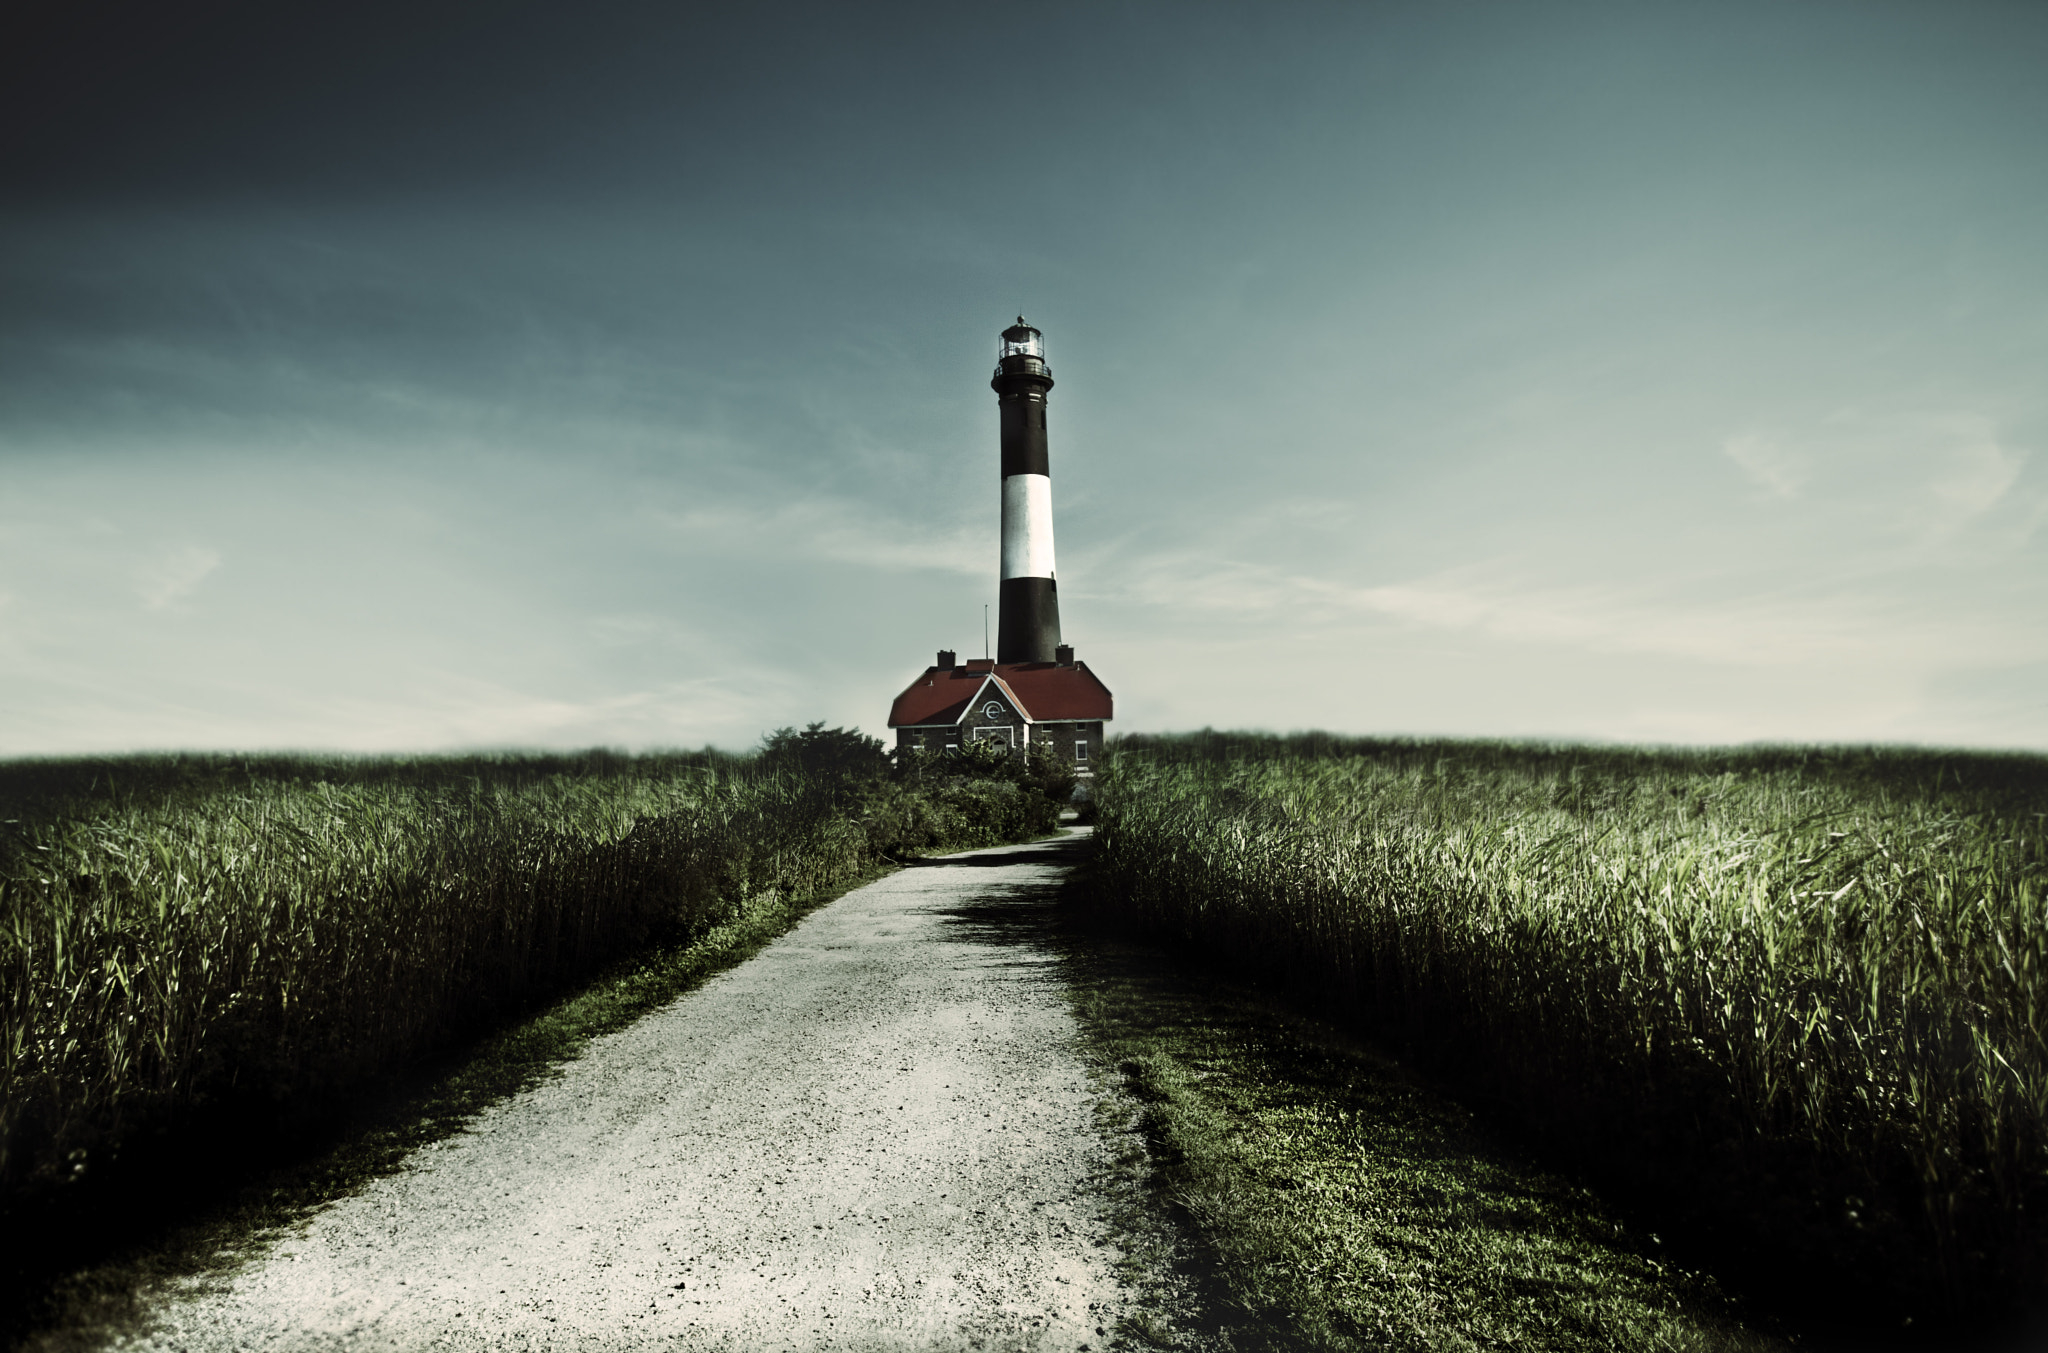 Photograph The lighthouse by Jason Moskowitz on 500px